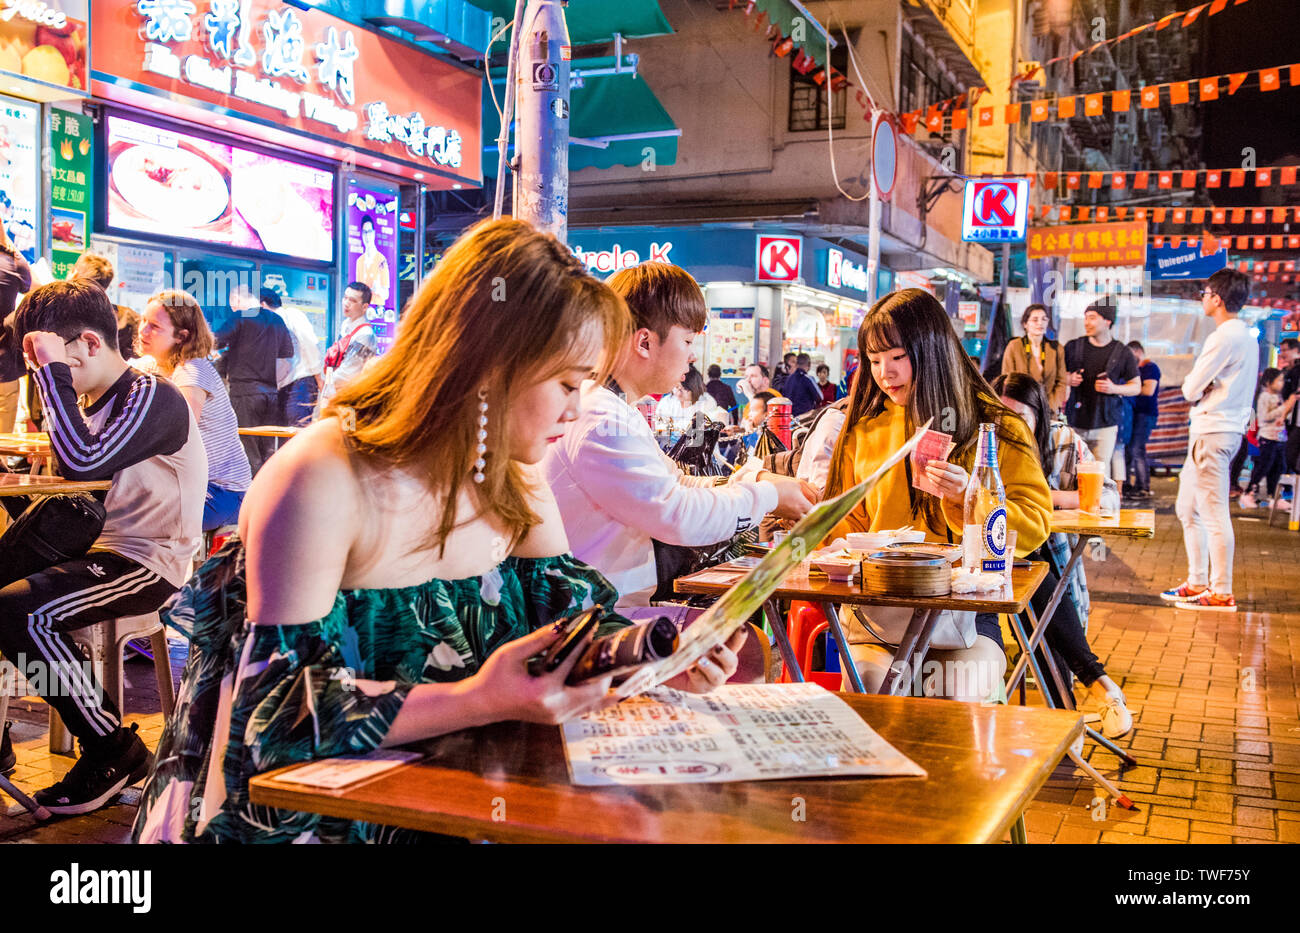 Large group of people relaxing and socialising at Temple Street night market in Hong Kong. - Stock Image